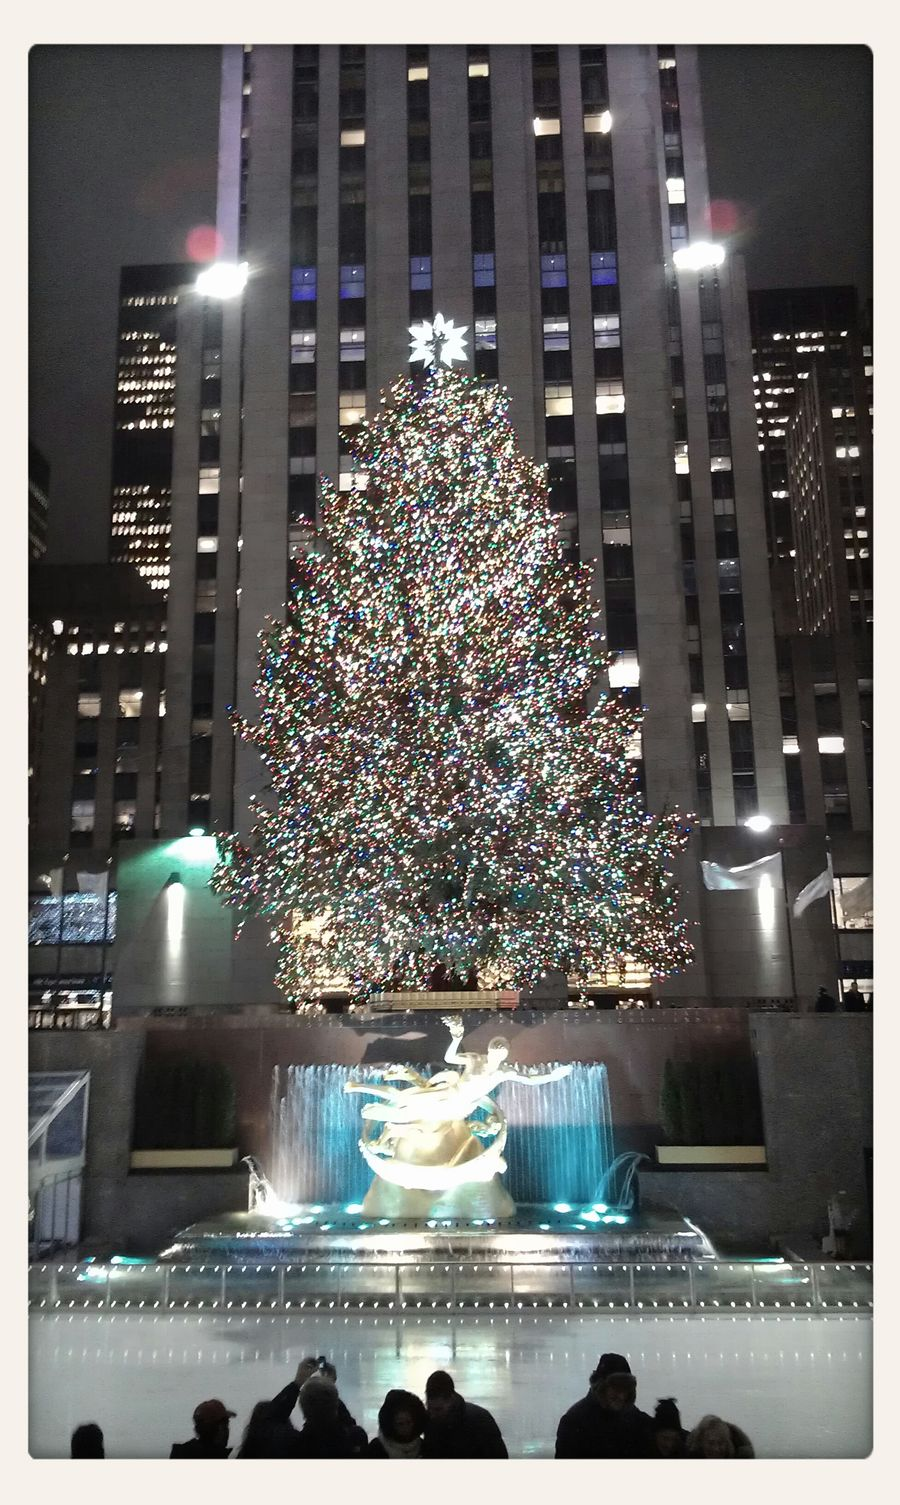 Rockefeller Christmas tree (: Merryxmas Newyork Rockefeller Center Beautiful Tree Lots Of Lights Magic Is In The Air Fall In Love ♡ Pure Emotions. Excited :) Happiness